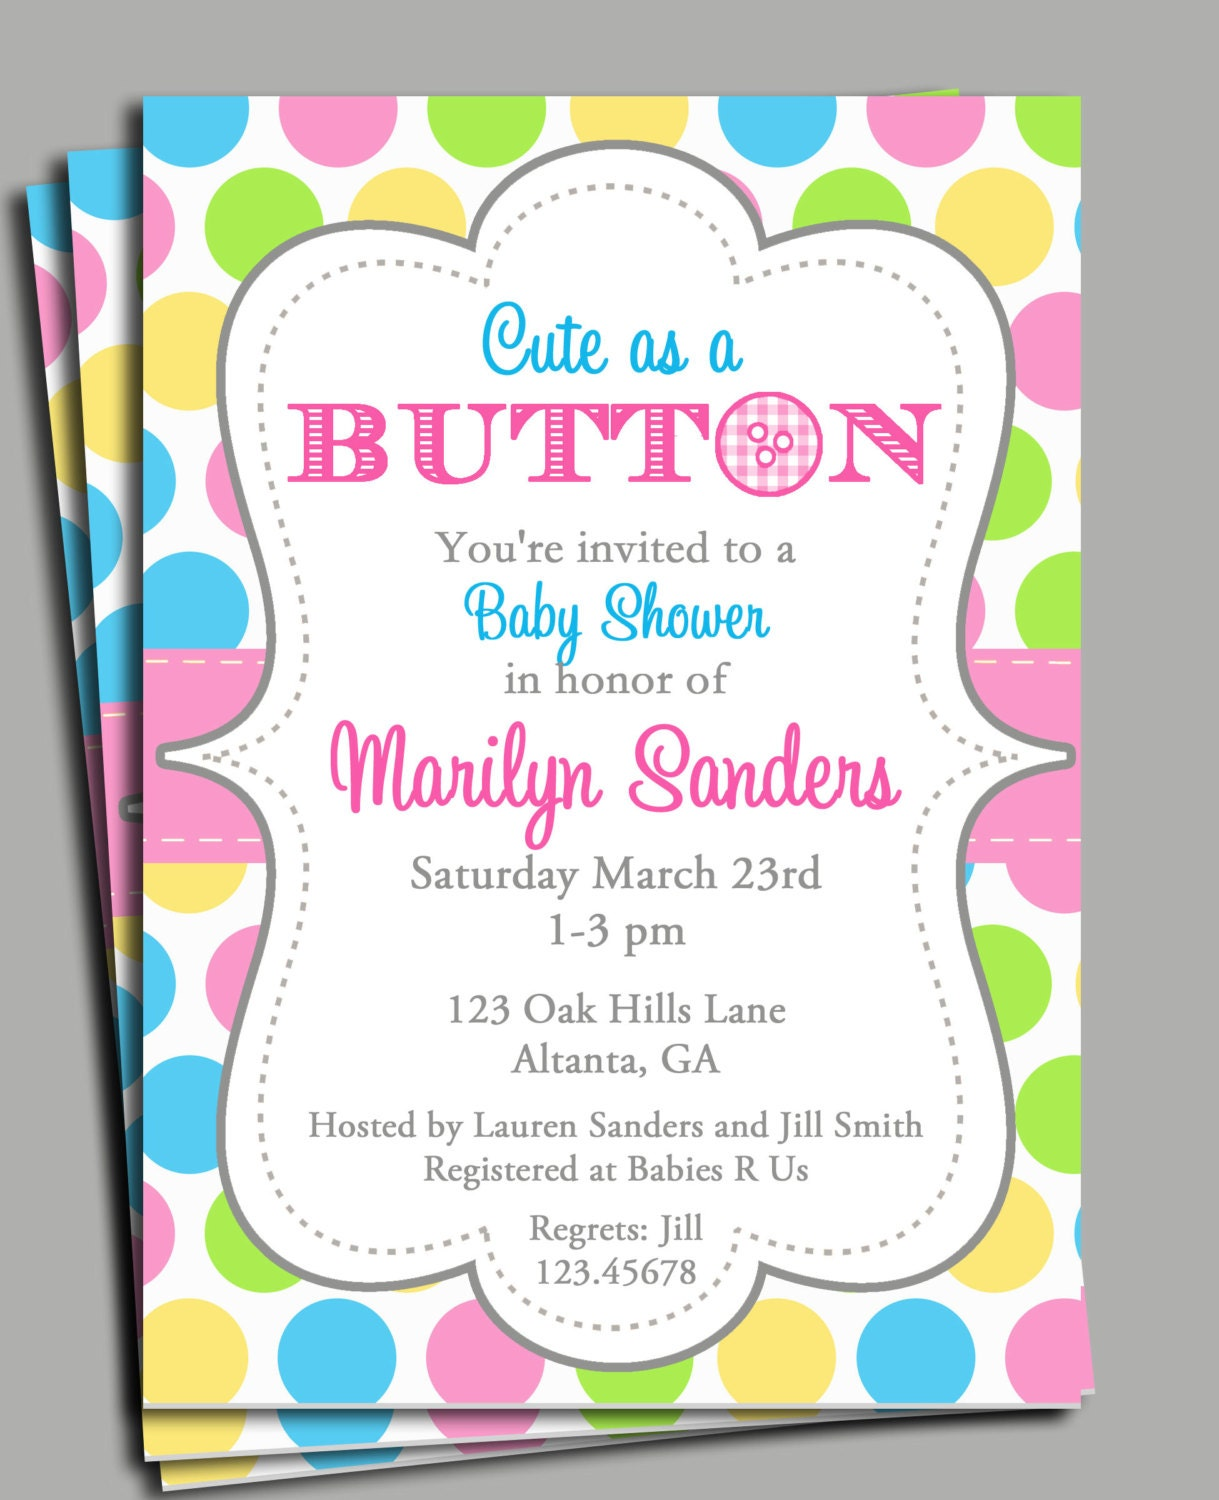 Cute as a Button Invitation Printable or Printed with FREE